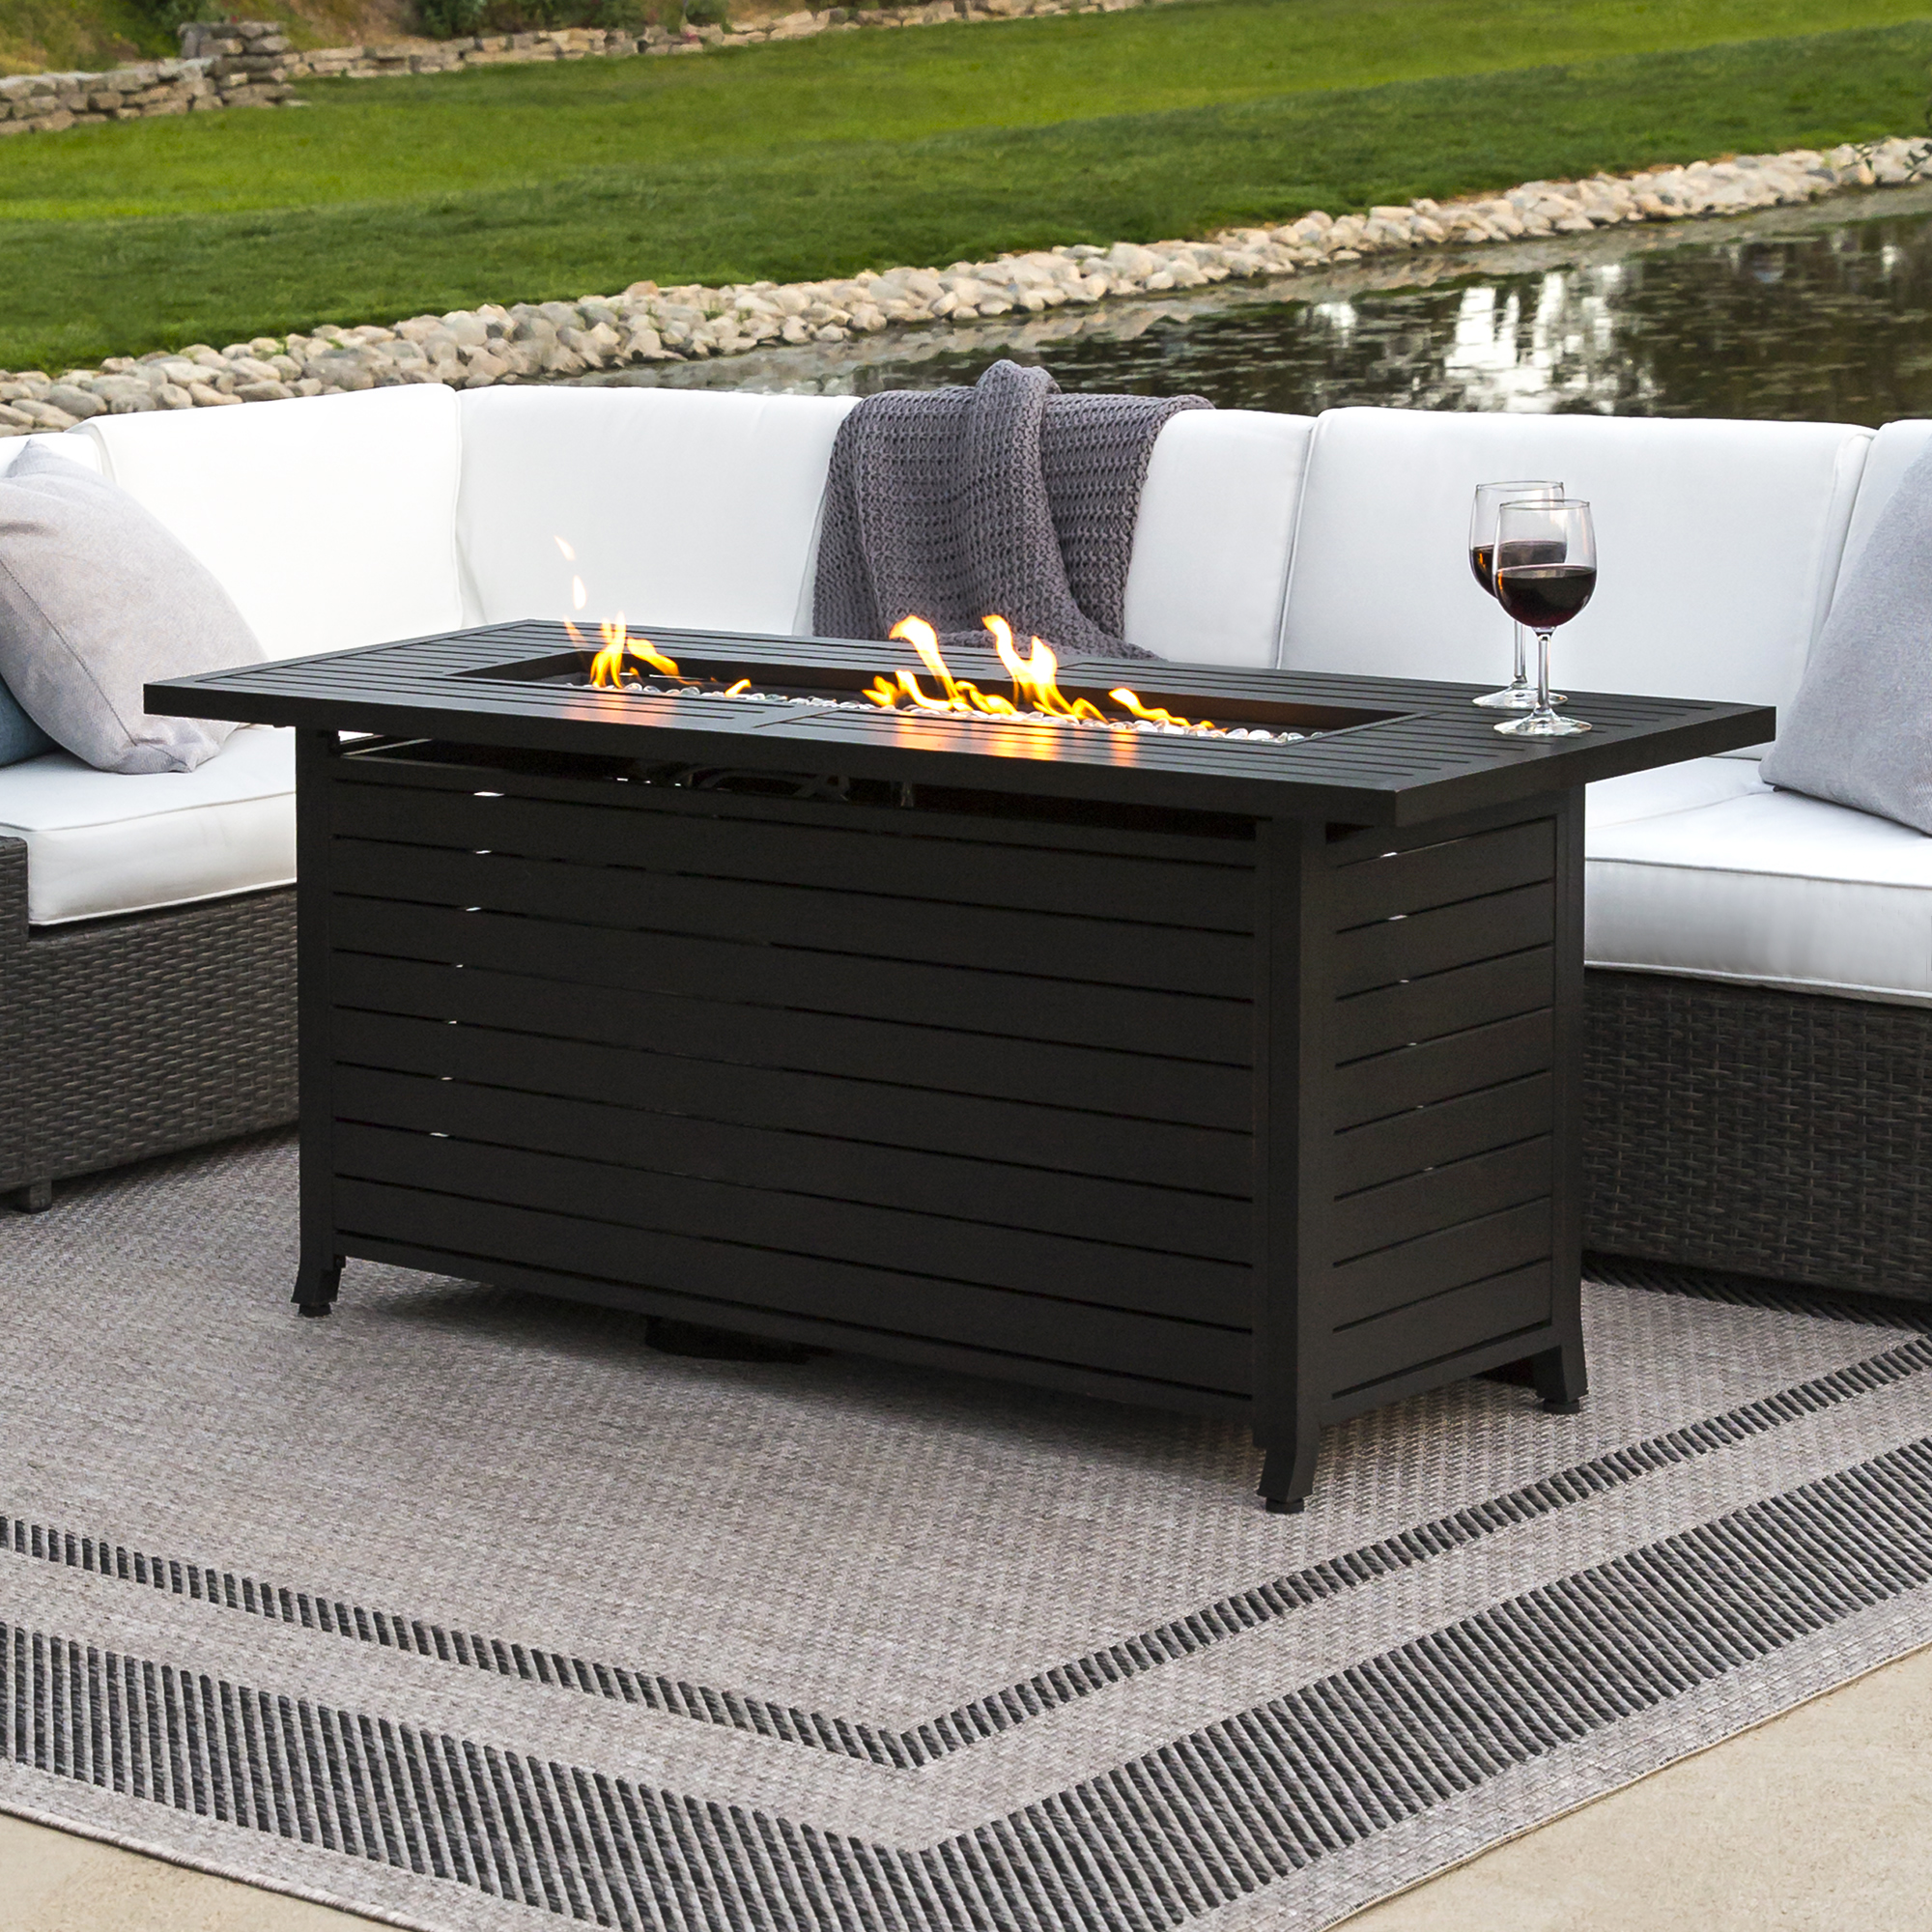 Best Choice Products 57in Rectangular Extruded Aluminum Gas Fire Pit